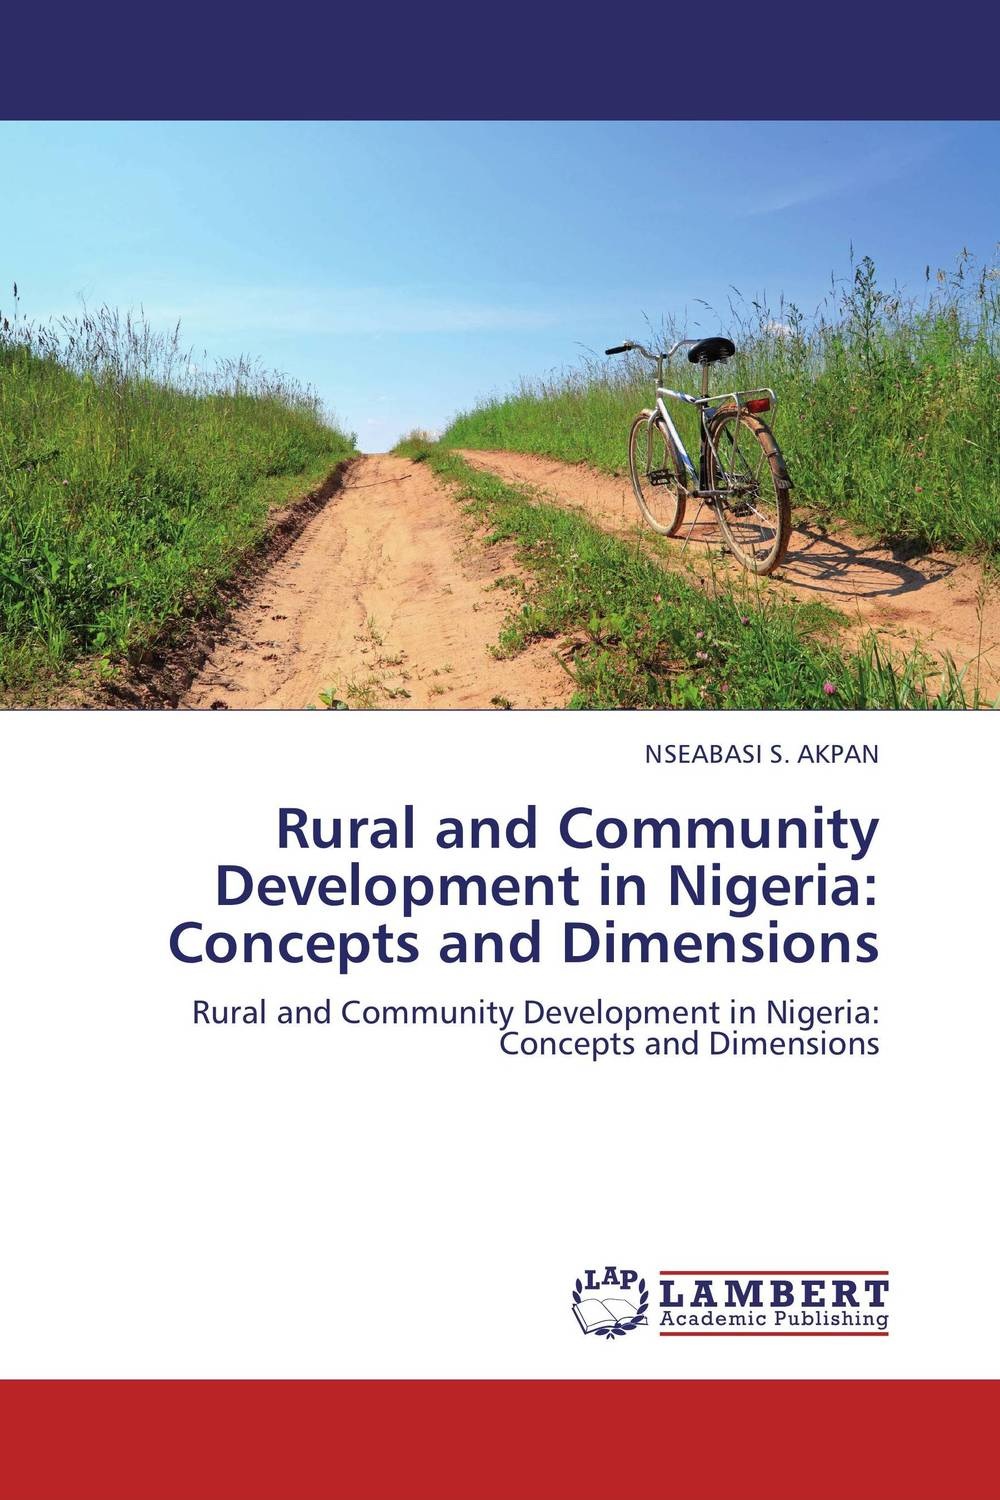 Rural and Community Development in Nigeria: Concepts and Dimensions maxwell musingafi raphinos alexander chabaya and emmanuel dumbu groups and community mobilisation for development